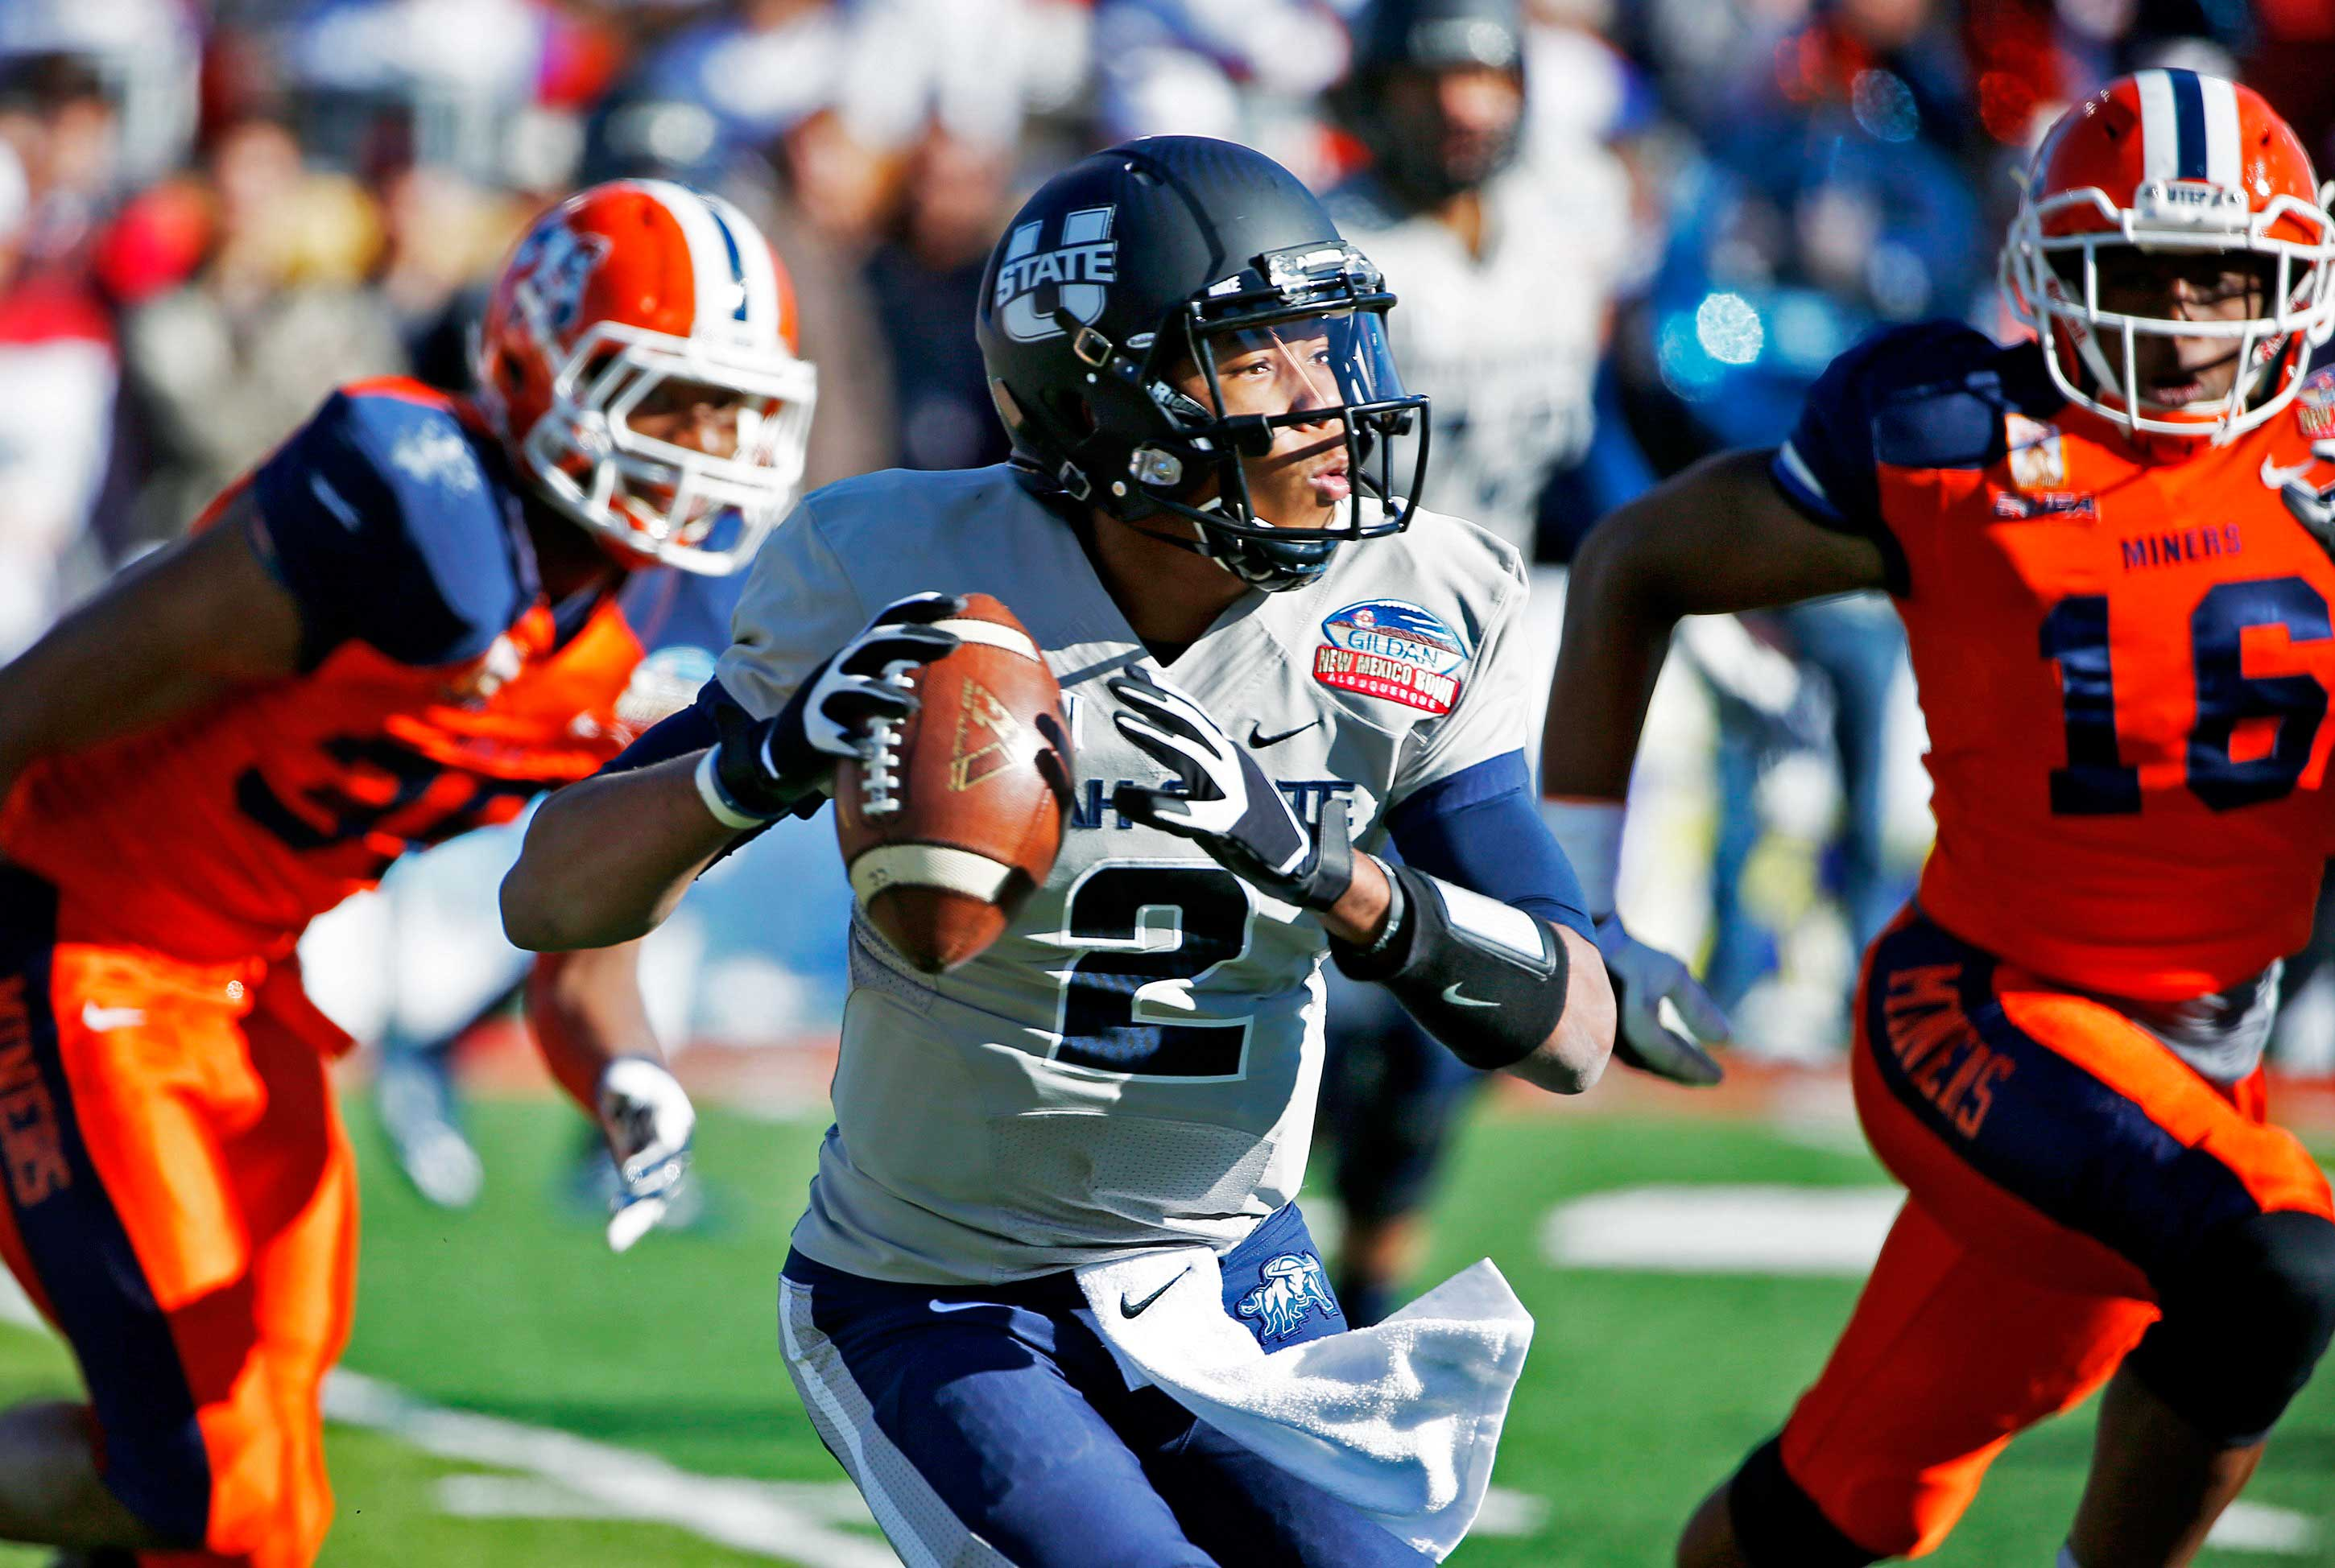 Utah State's Kent Myers (2) looks to pass the ball as he is chased by UTEP's Nick Usher, left, and Alvin Jones (16) during the first half of the New Mexico Bowl NCAA college football game Saturday, Dec. 20, 2014, in Albuquerque, N.M. (AP Photo/Ross D. Franklin)